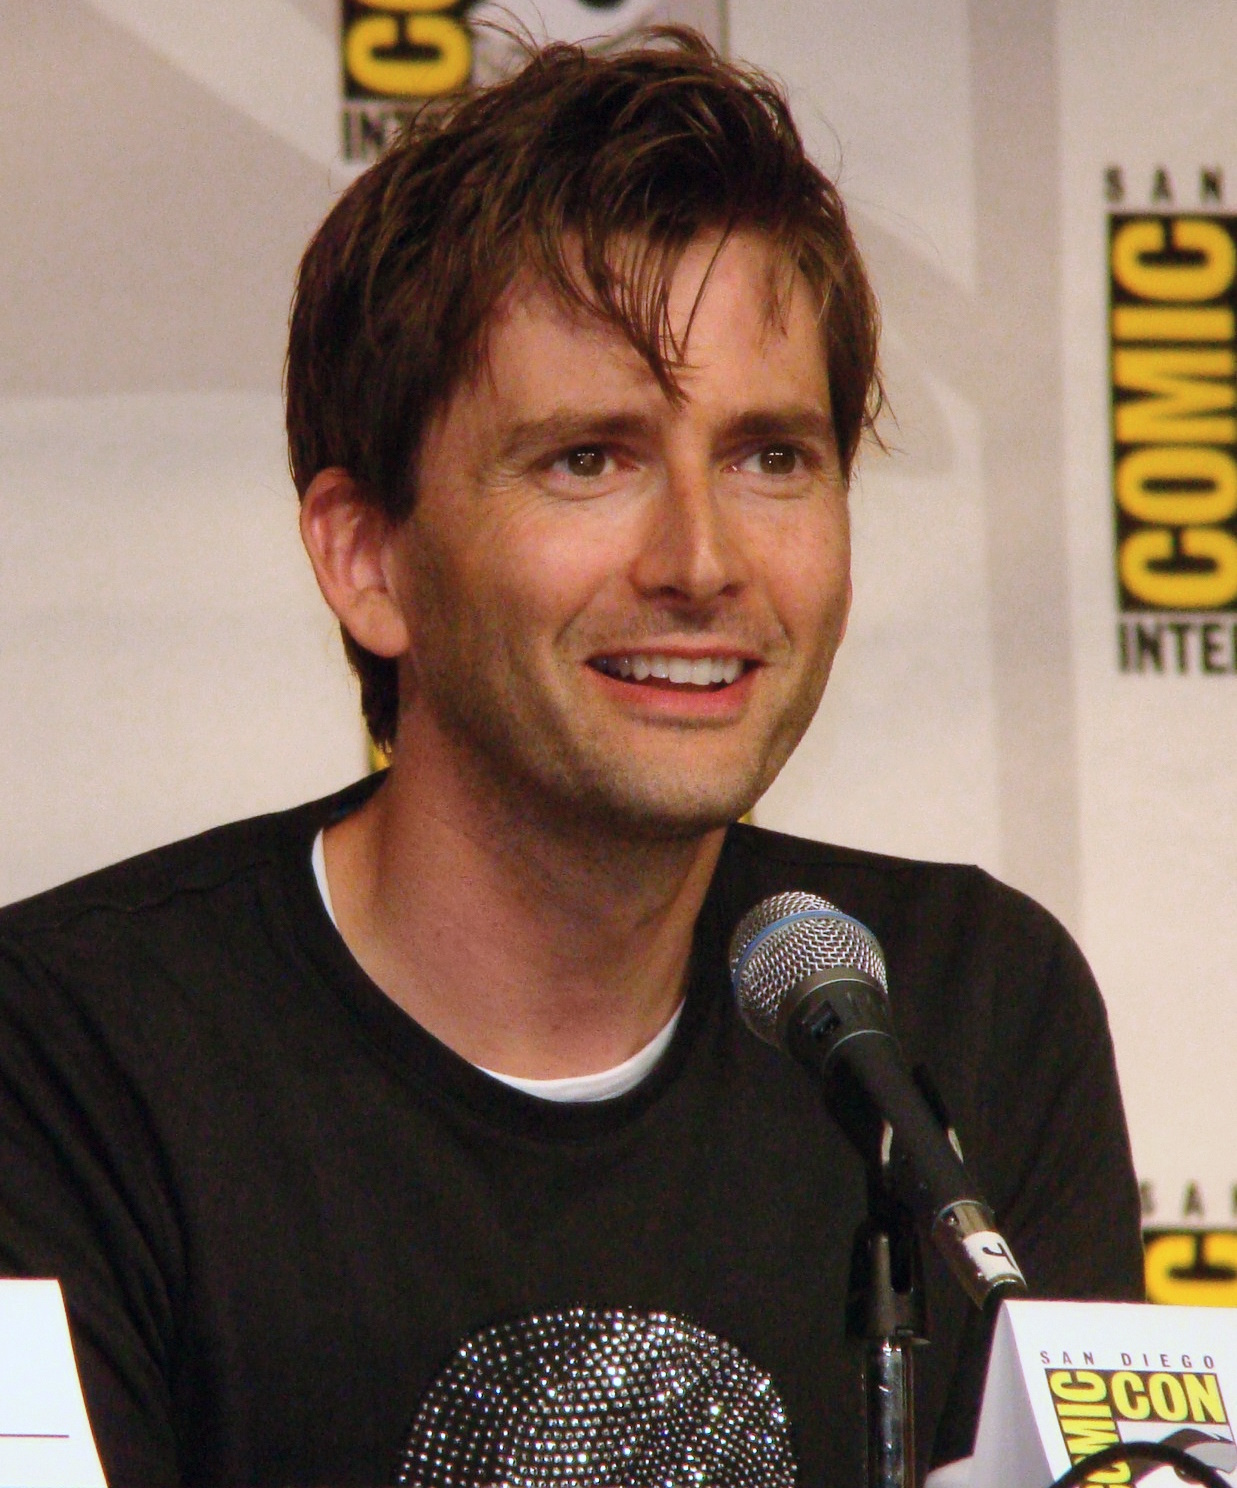 file:2009 07 31 david tennant smile 09.jpg - wikimedia commons